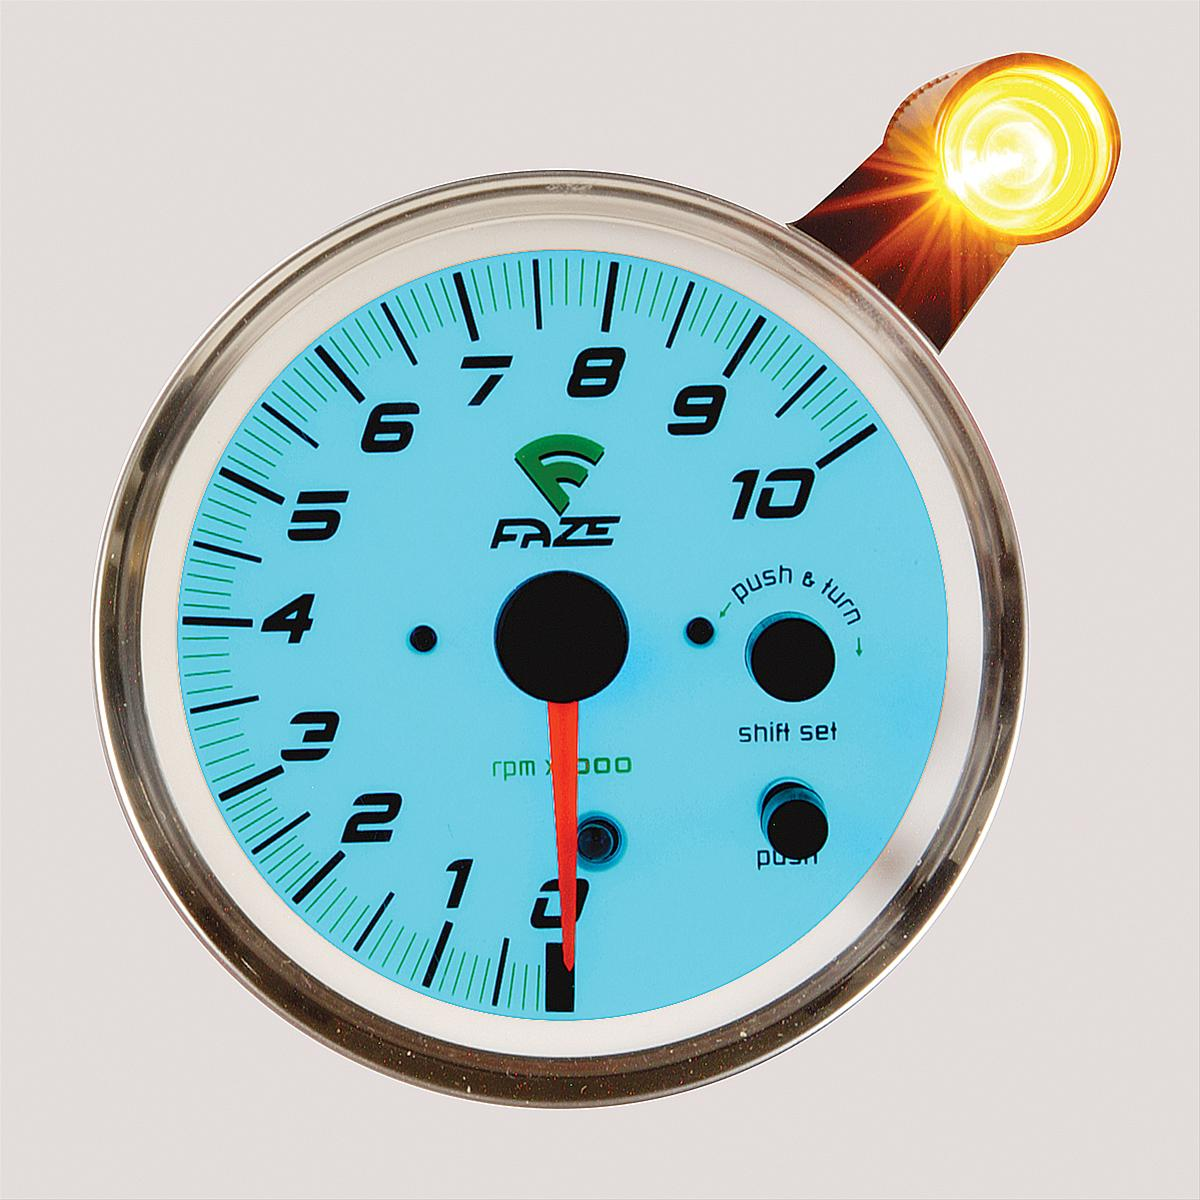 Equus Fuel Gauge Wiring Diagram as well Equus Tach Wiring Diagram as well Autometer Air Fuel Gauge Wiring Diagram besides Tach Wiring Diagram additionally Autometer Tach Install. on sunpro tachometer wiring diagram